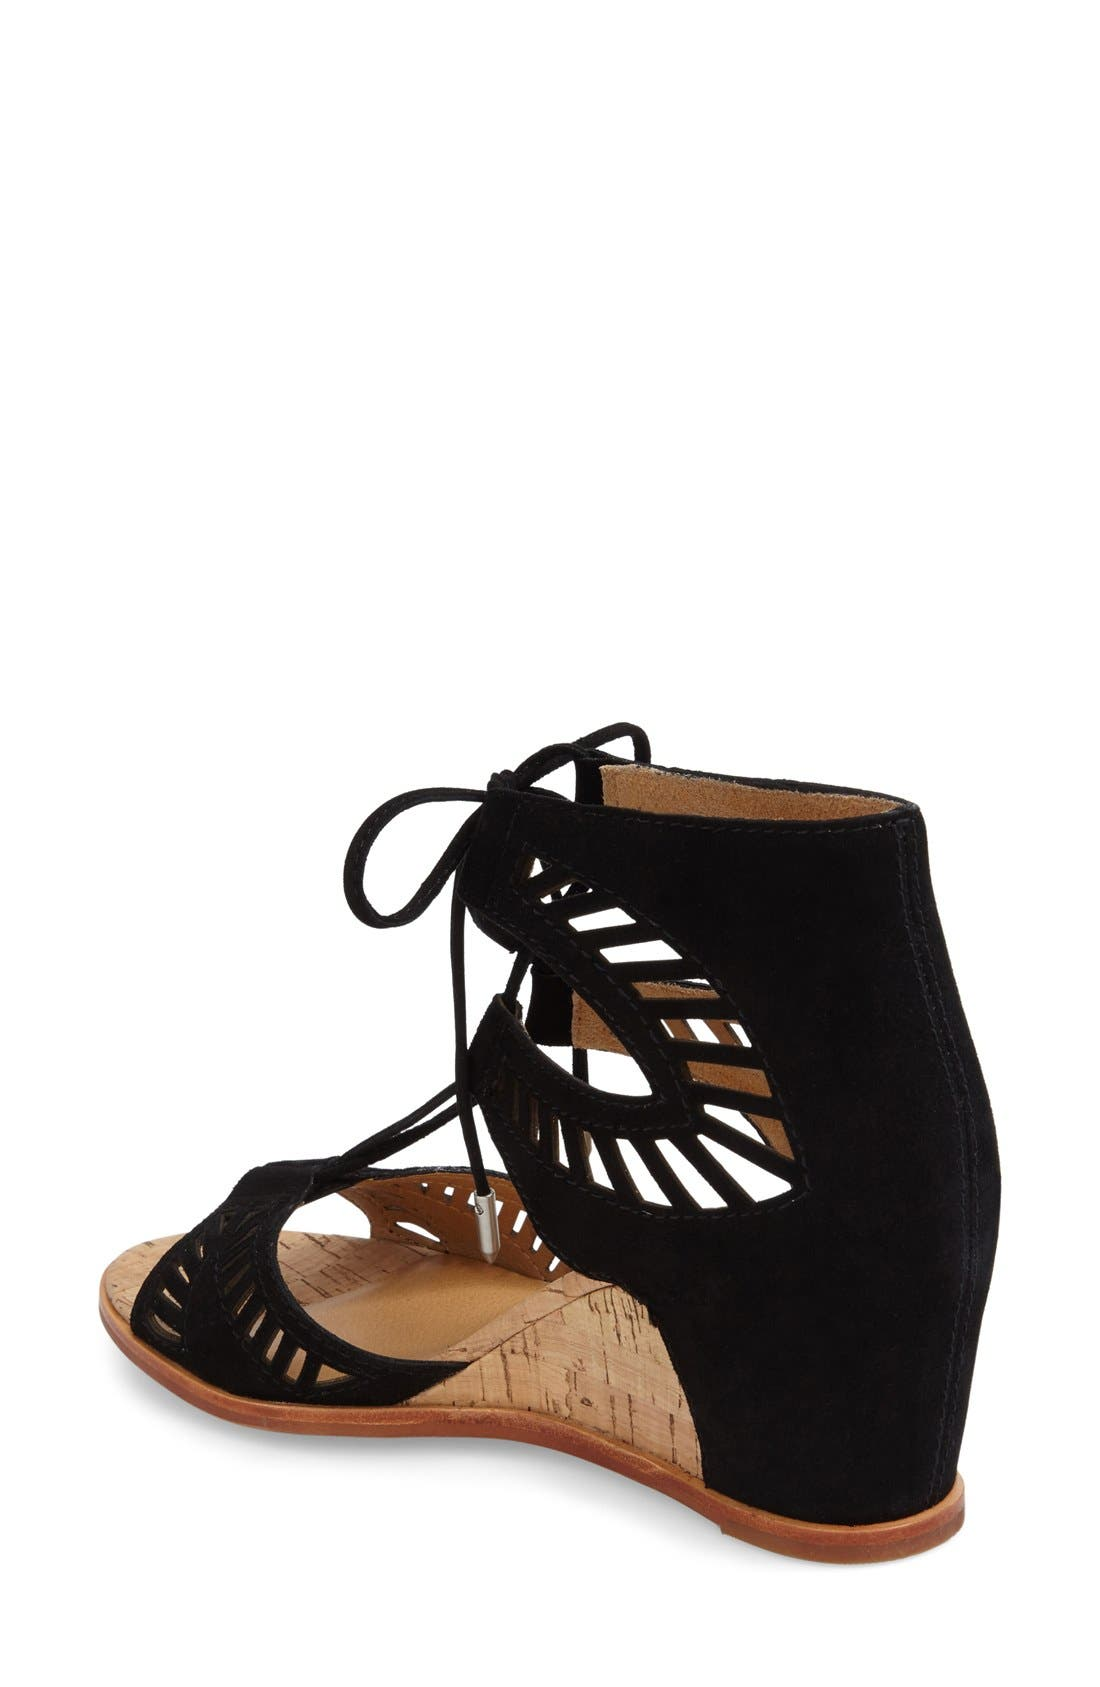 DOLCE VITA, 'Linsey' Lace-Up Wedge Sandal, Alternate thumbnail 4, color, 001